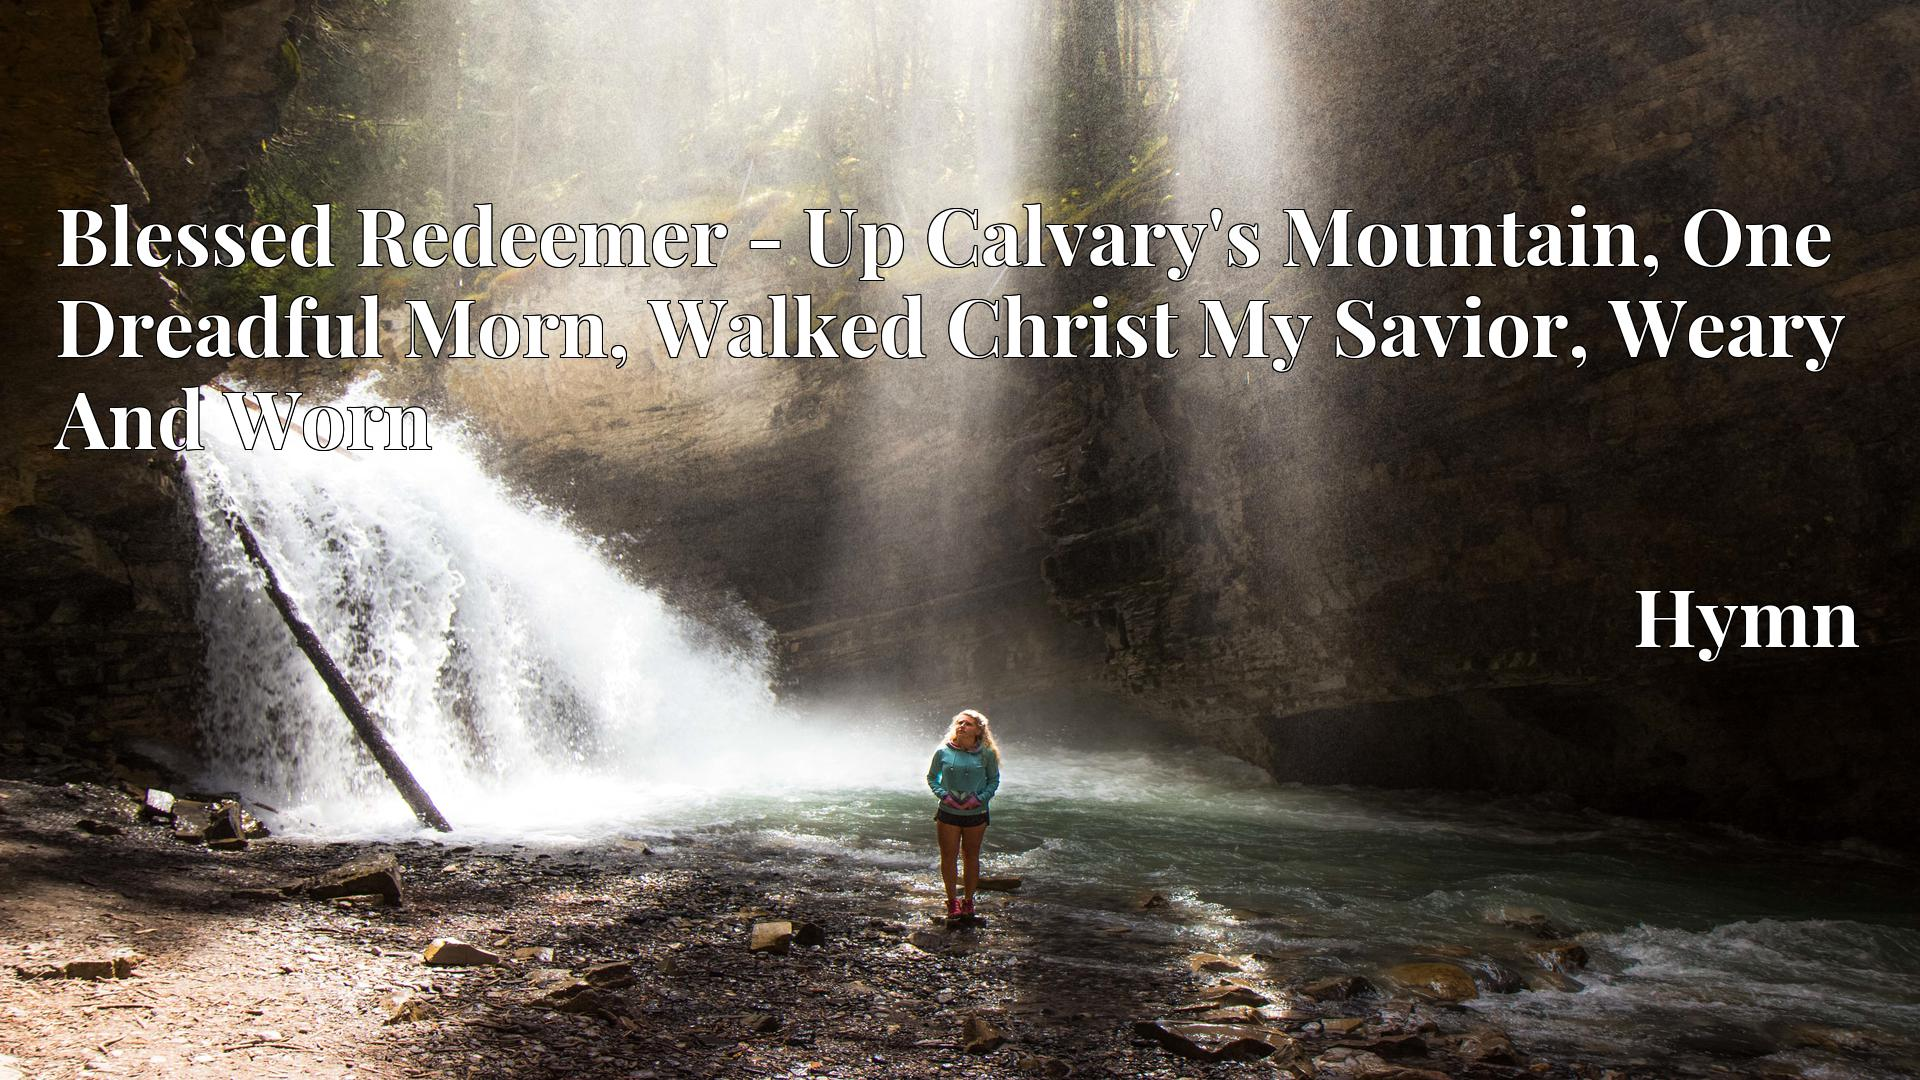 Blessed Redeemer - Up Calvary's Mountain, One Dreadful Morn, Walked Christ My Savior, Weary And Worn Hymn